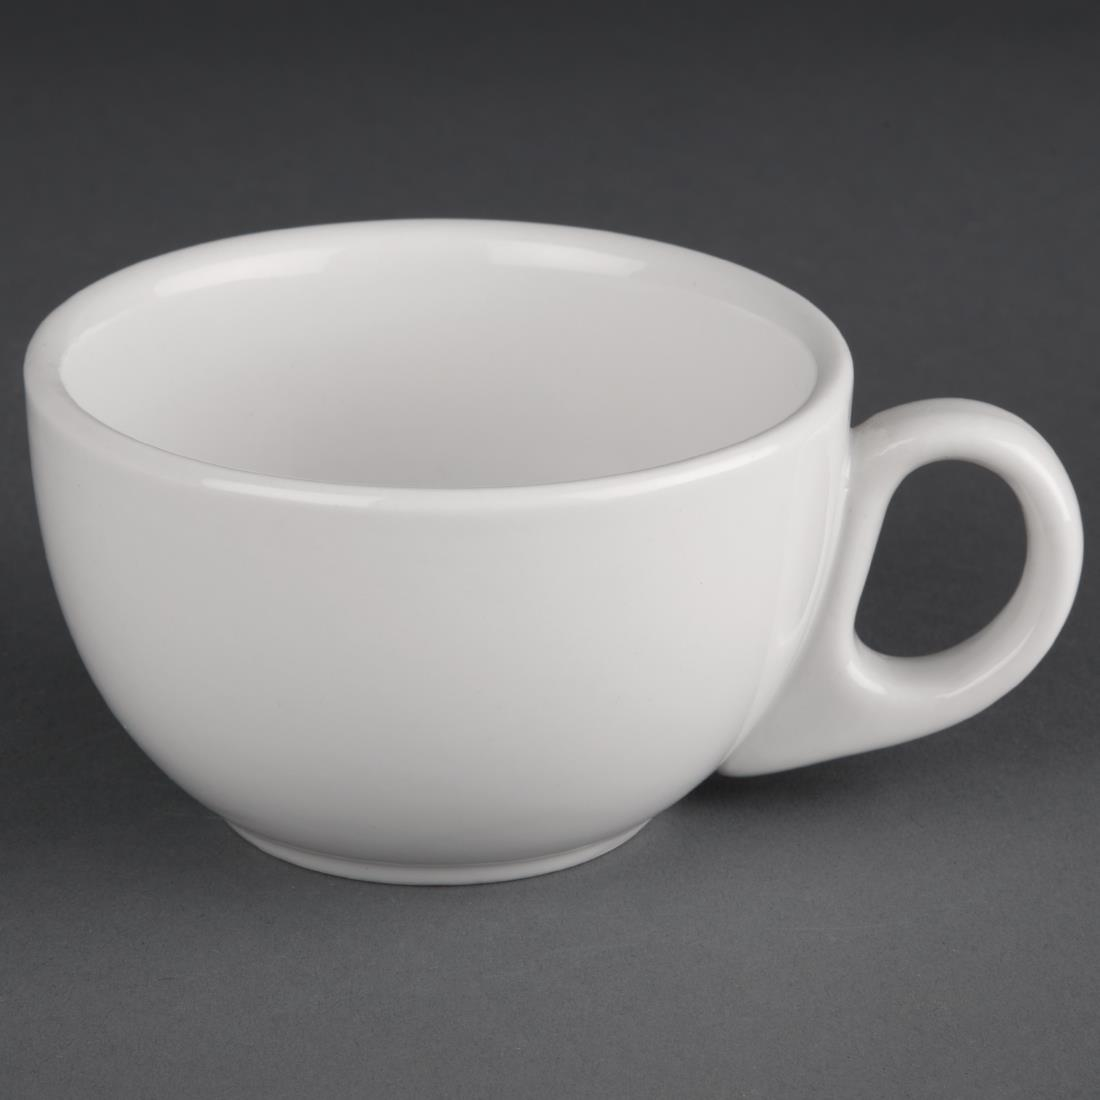 Image of Athena Hotelware Cappuccino Cups 8oz (Pack of 24) Pack of 24